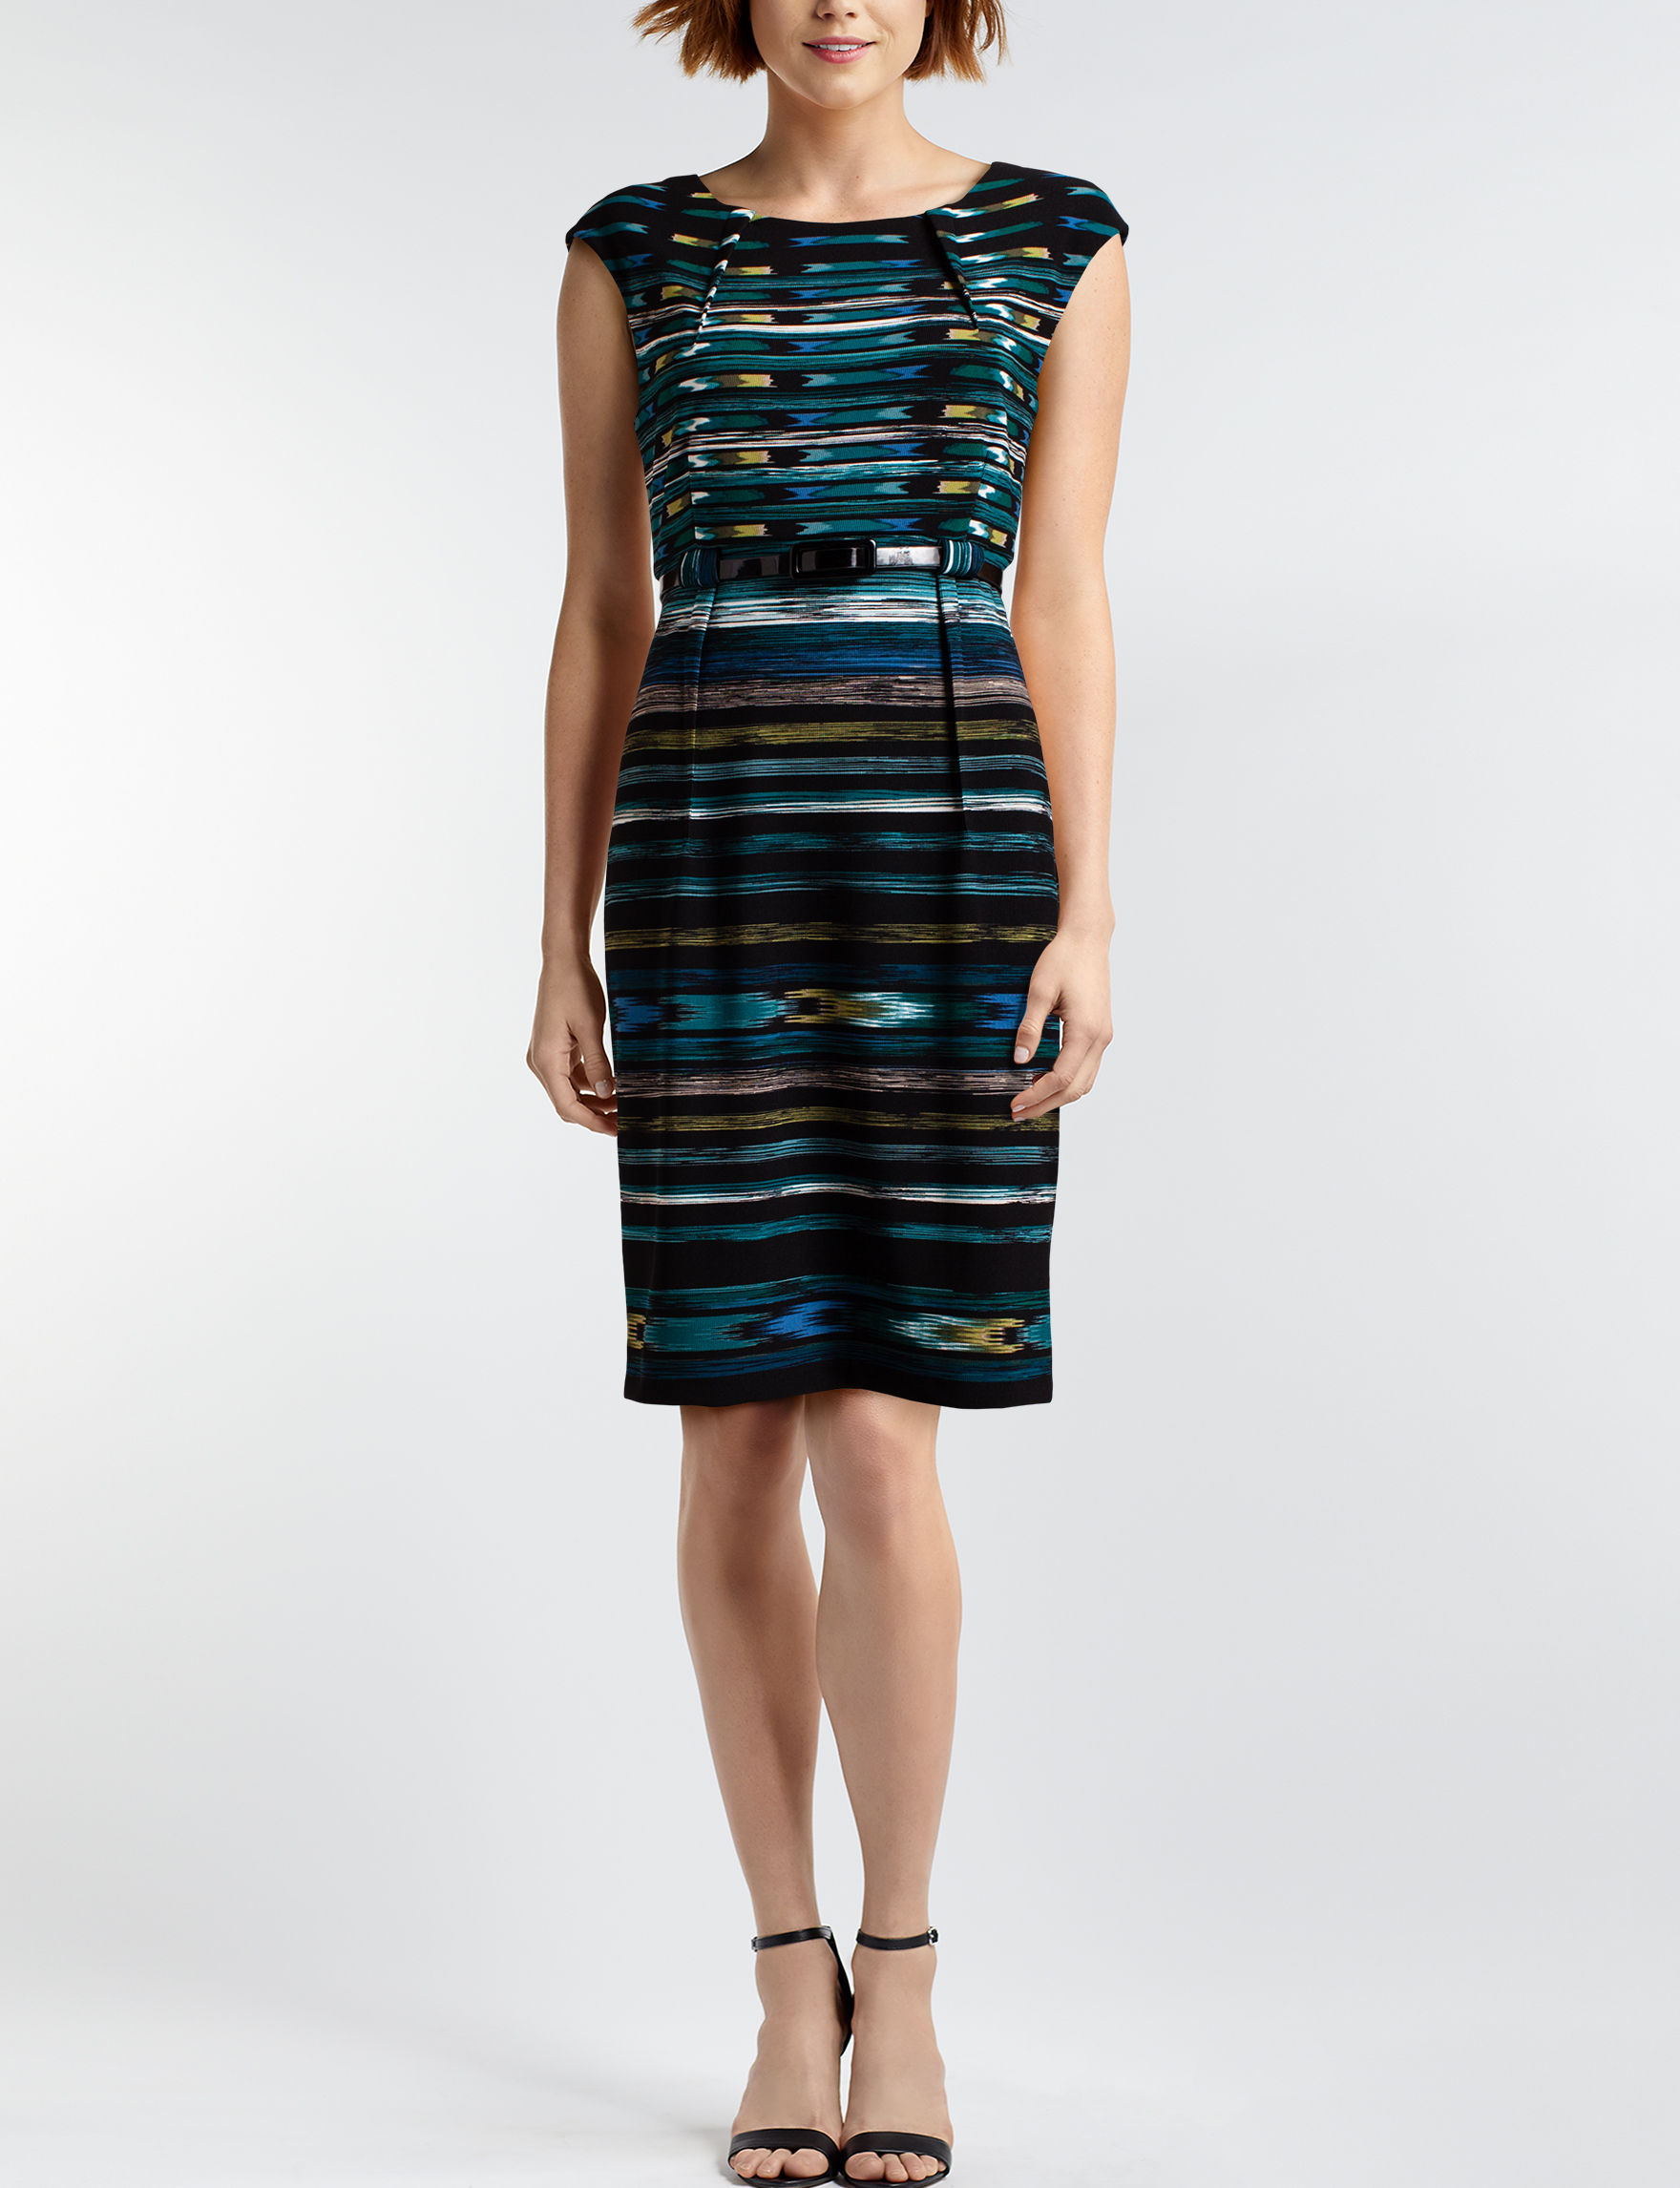 Connected Teal Everyday & Casual Sheath Dresses